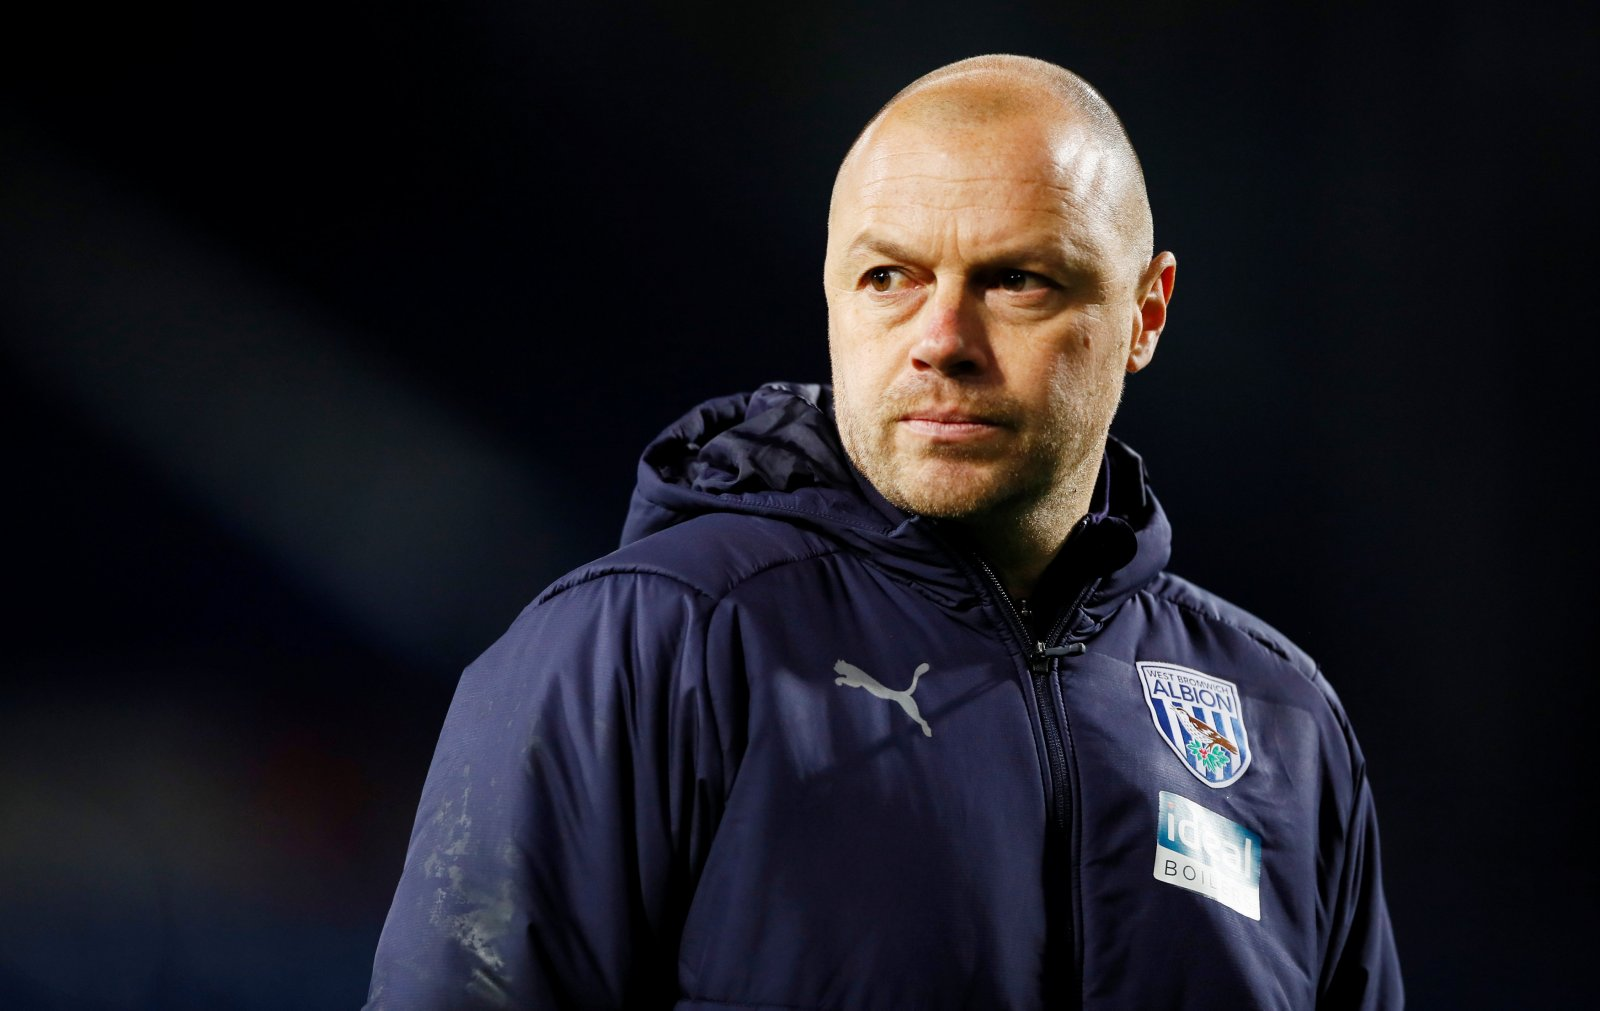 It is a risk worth taking' – Update emerges in West Brom manager